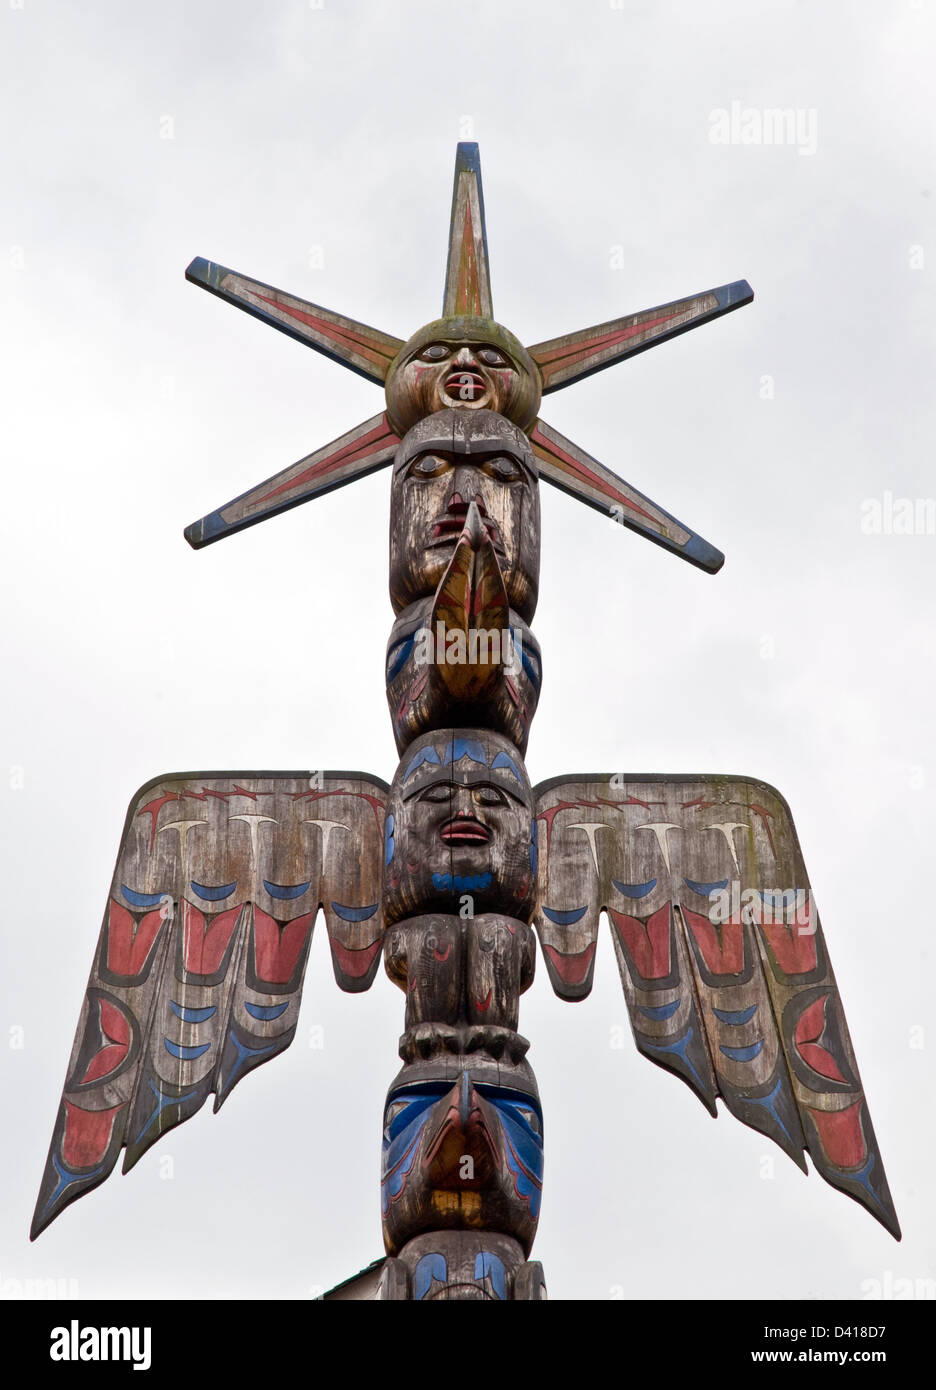 A totem pole carved in the Nuxalk tradition in the Great Bear Rainforest, in the town of Bella Coola, British Columbia, - Stock Image